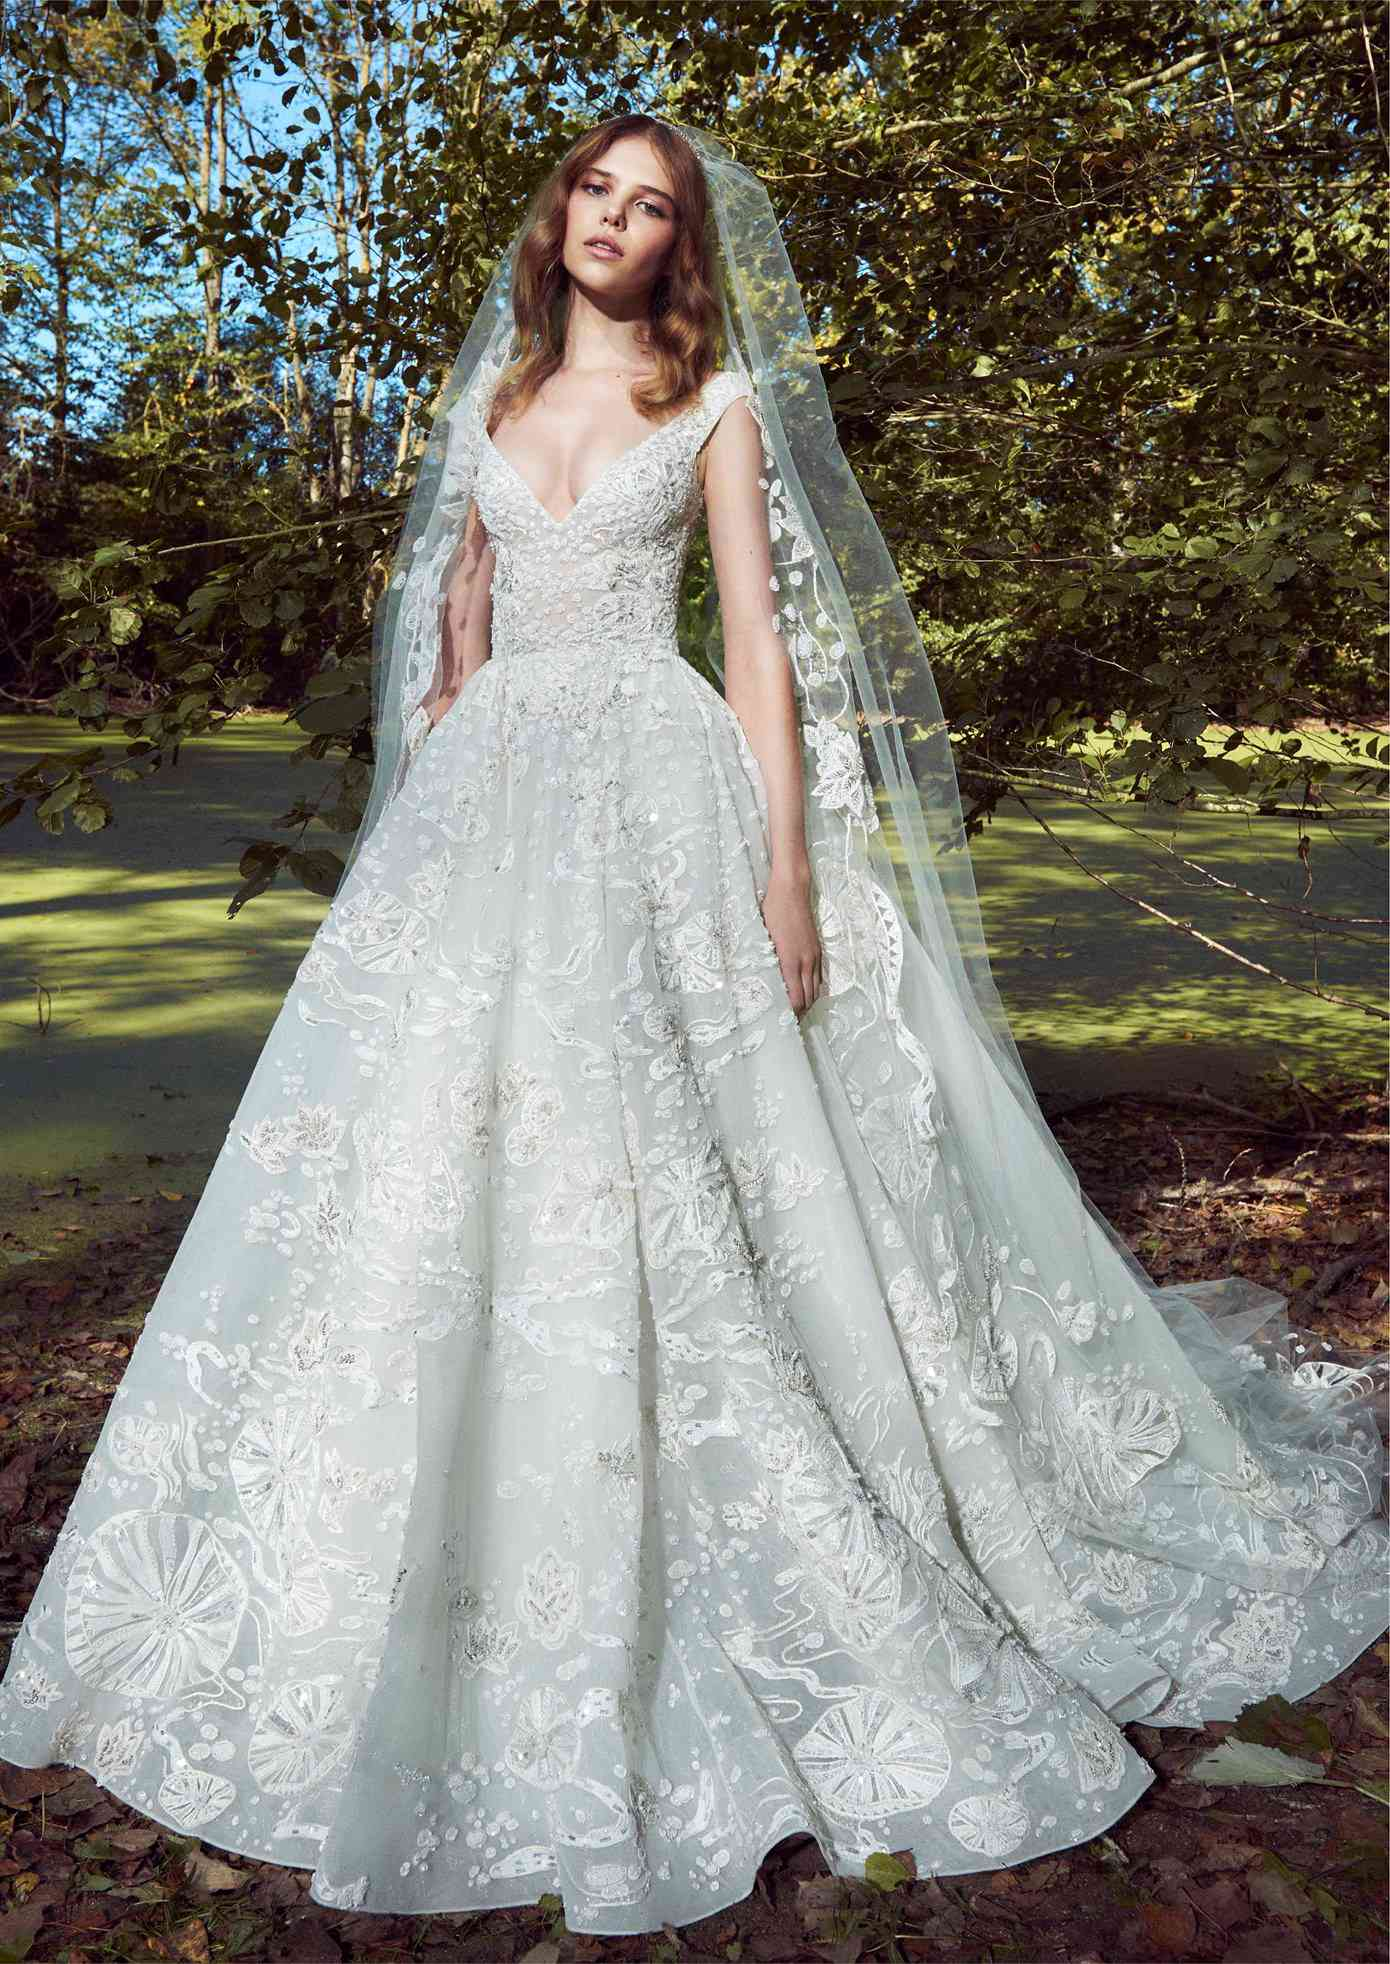 Model in an off-the-shoulder V-neck bateau ballgown with embroidery and beading with a matching veil